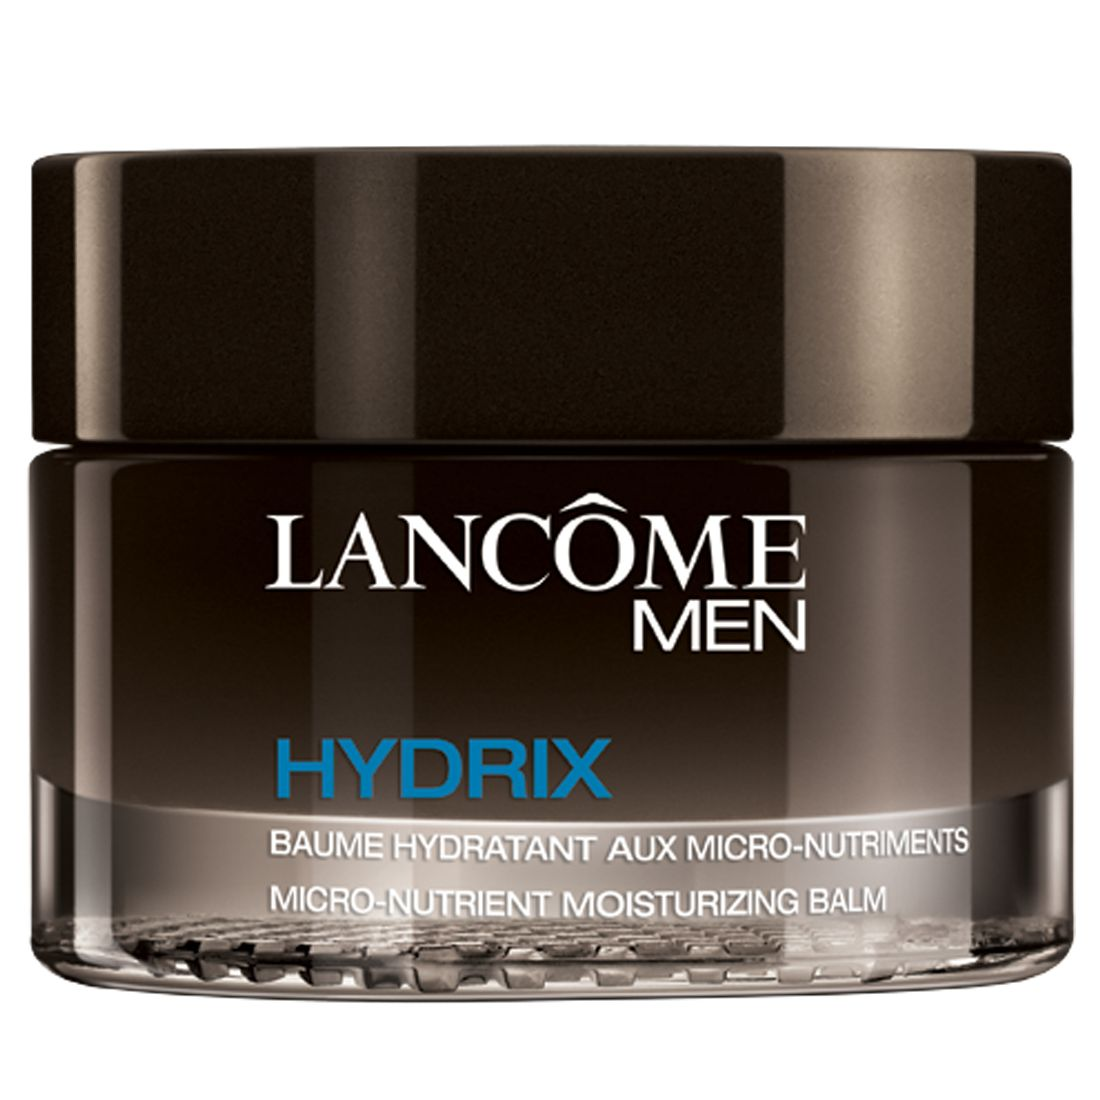 Lancôme Men Hydrix Balm 50ml